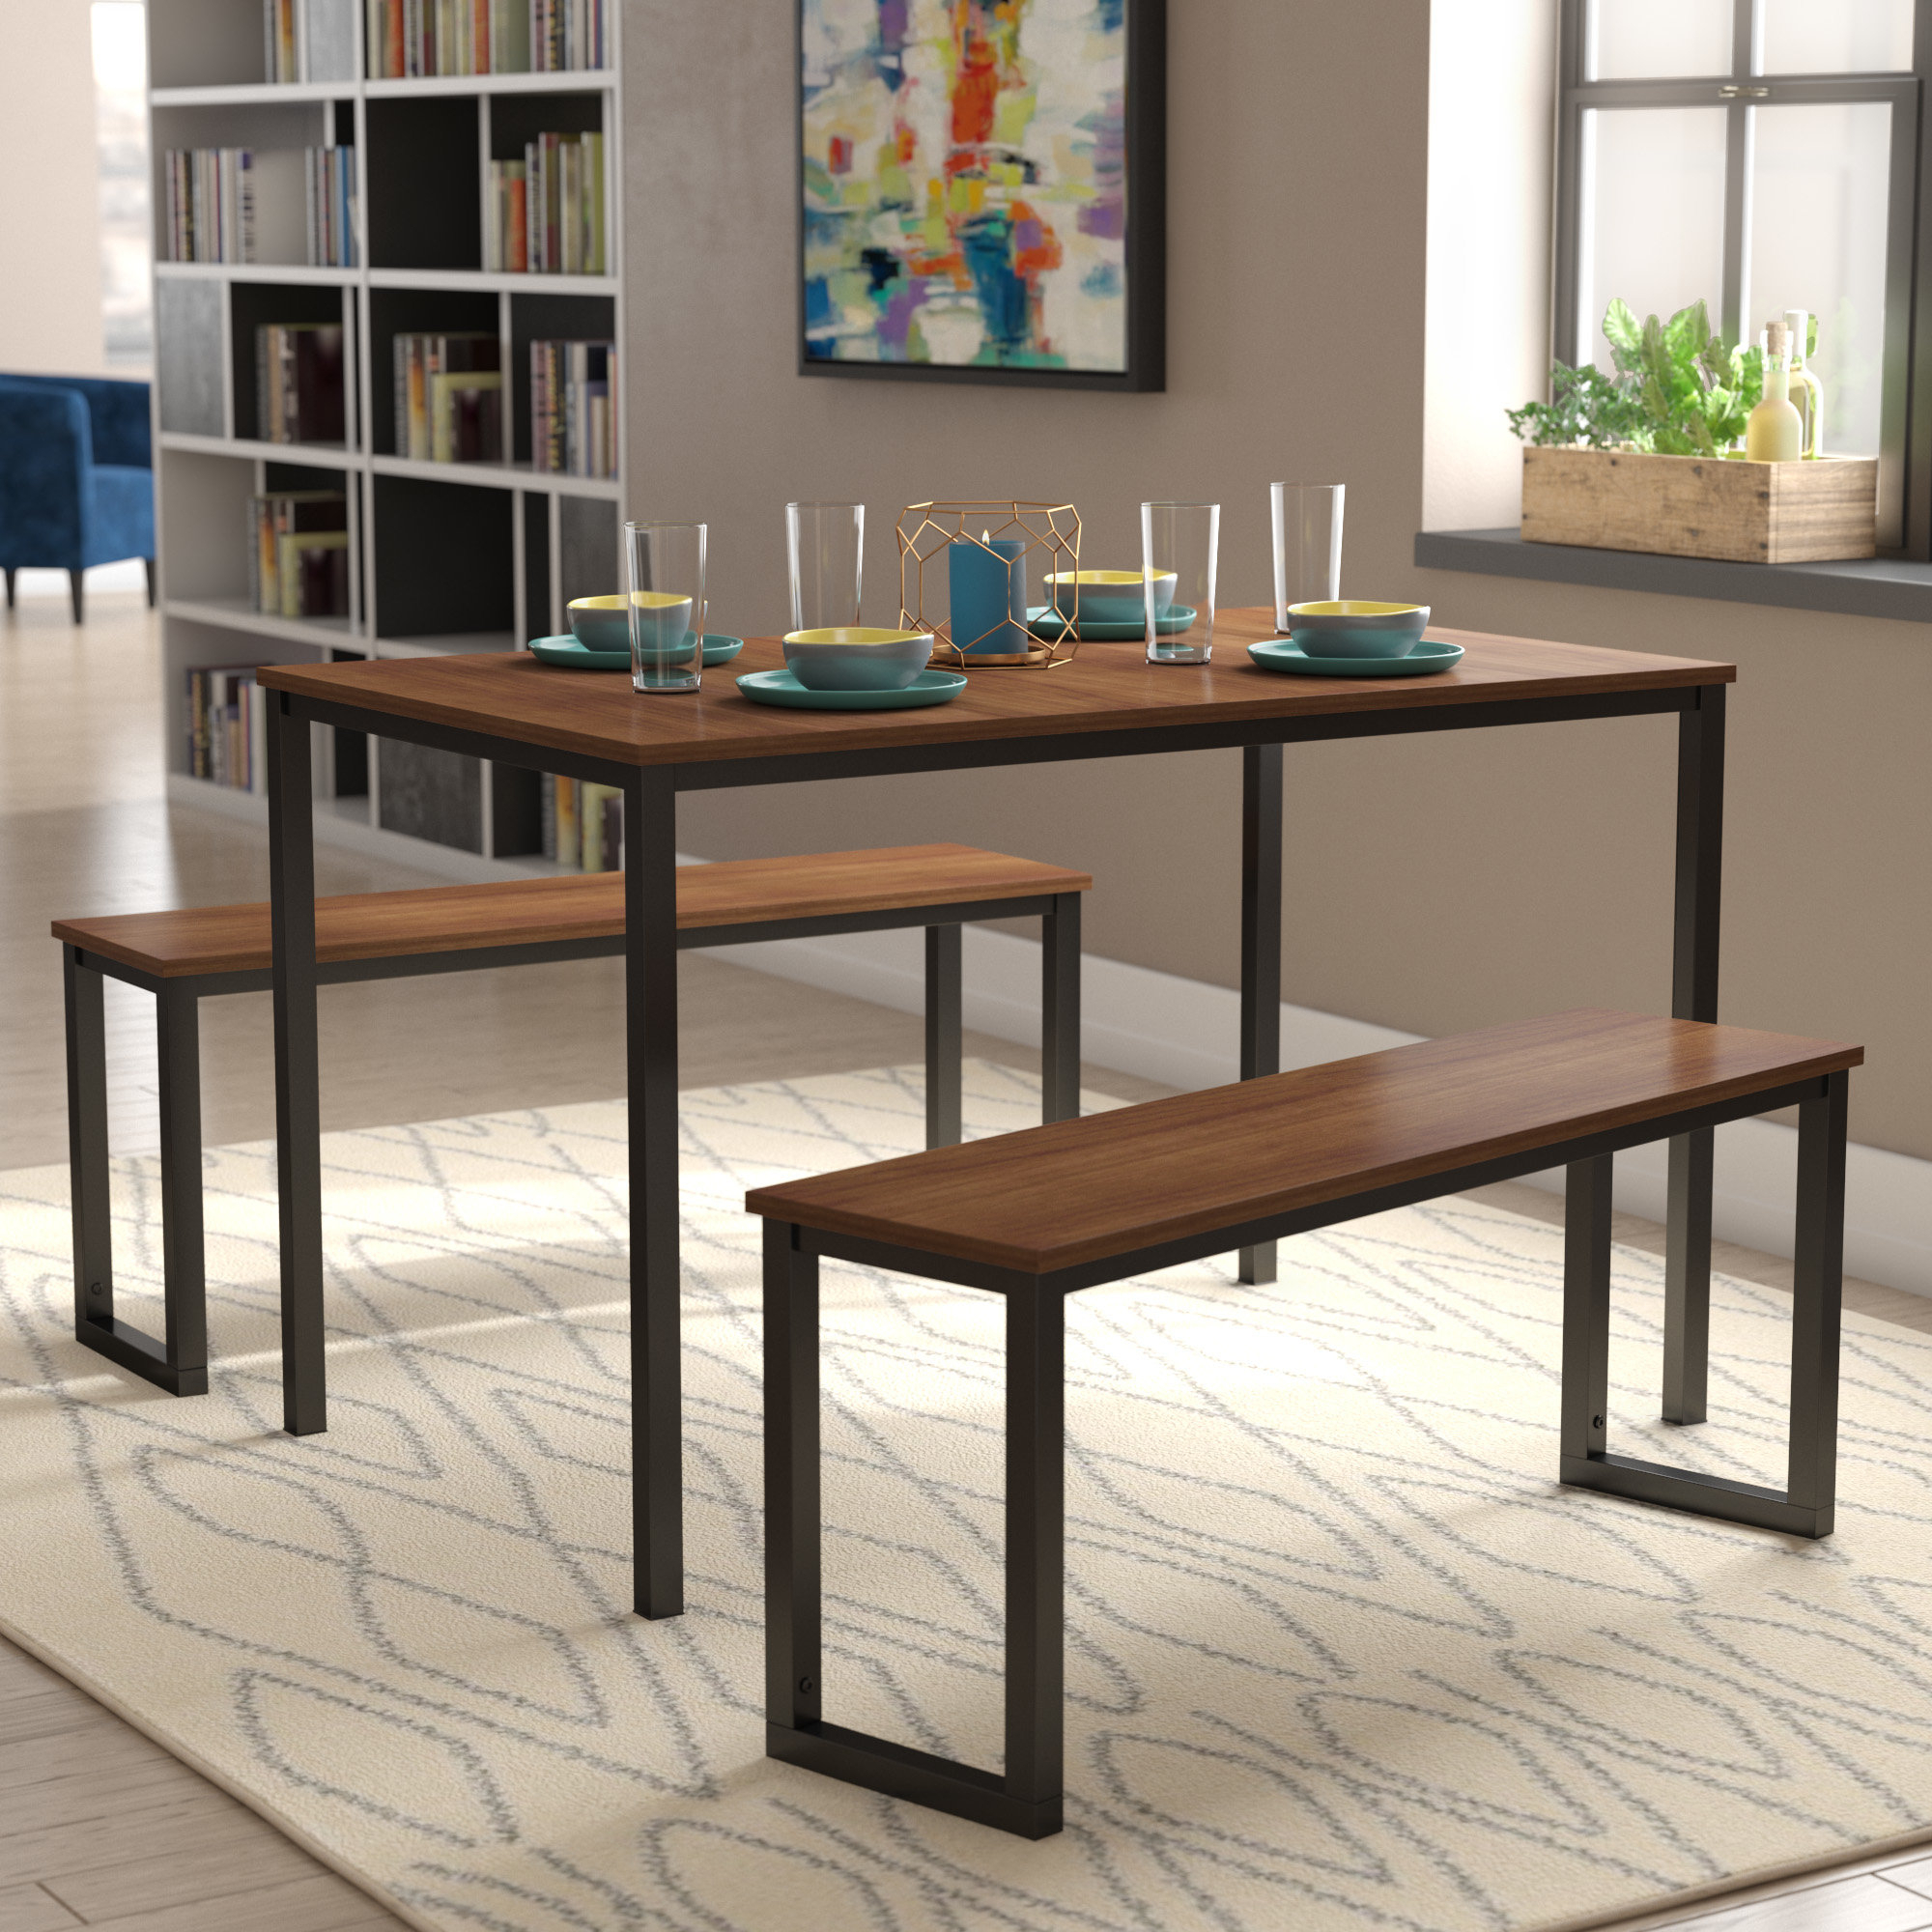 3 Piece Dining Sets Throughout Latest Modern Rustic Interiors Frida 3 Piece Dining Table Set & Reviews (#3 of 20)